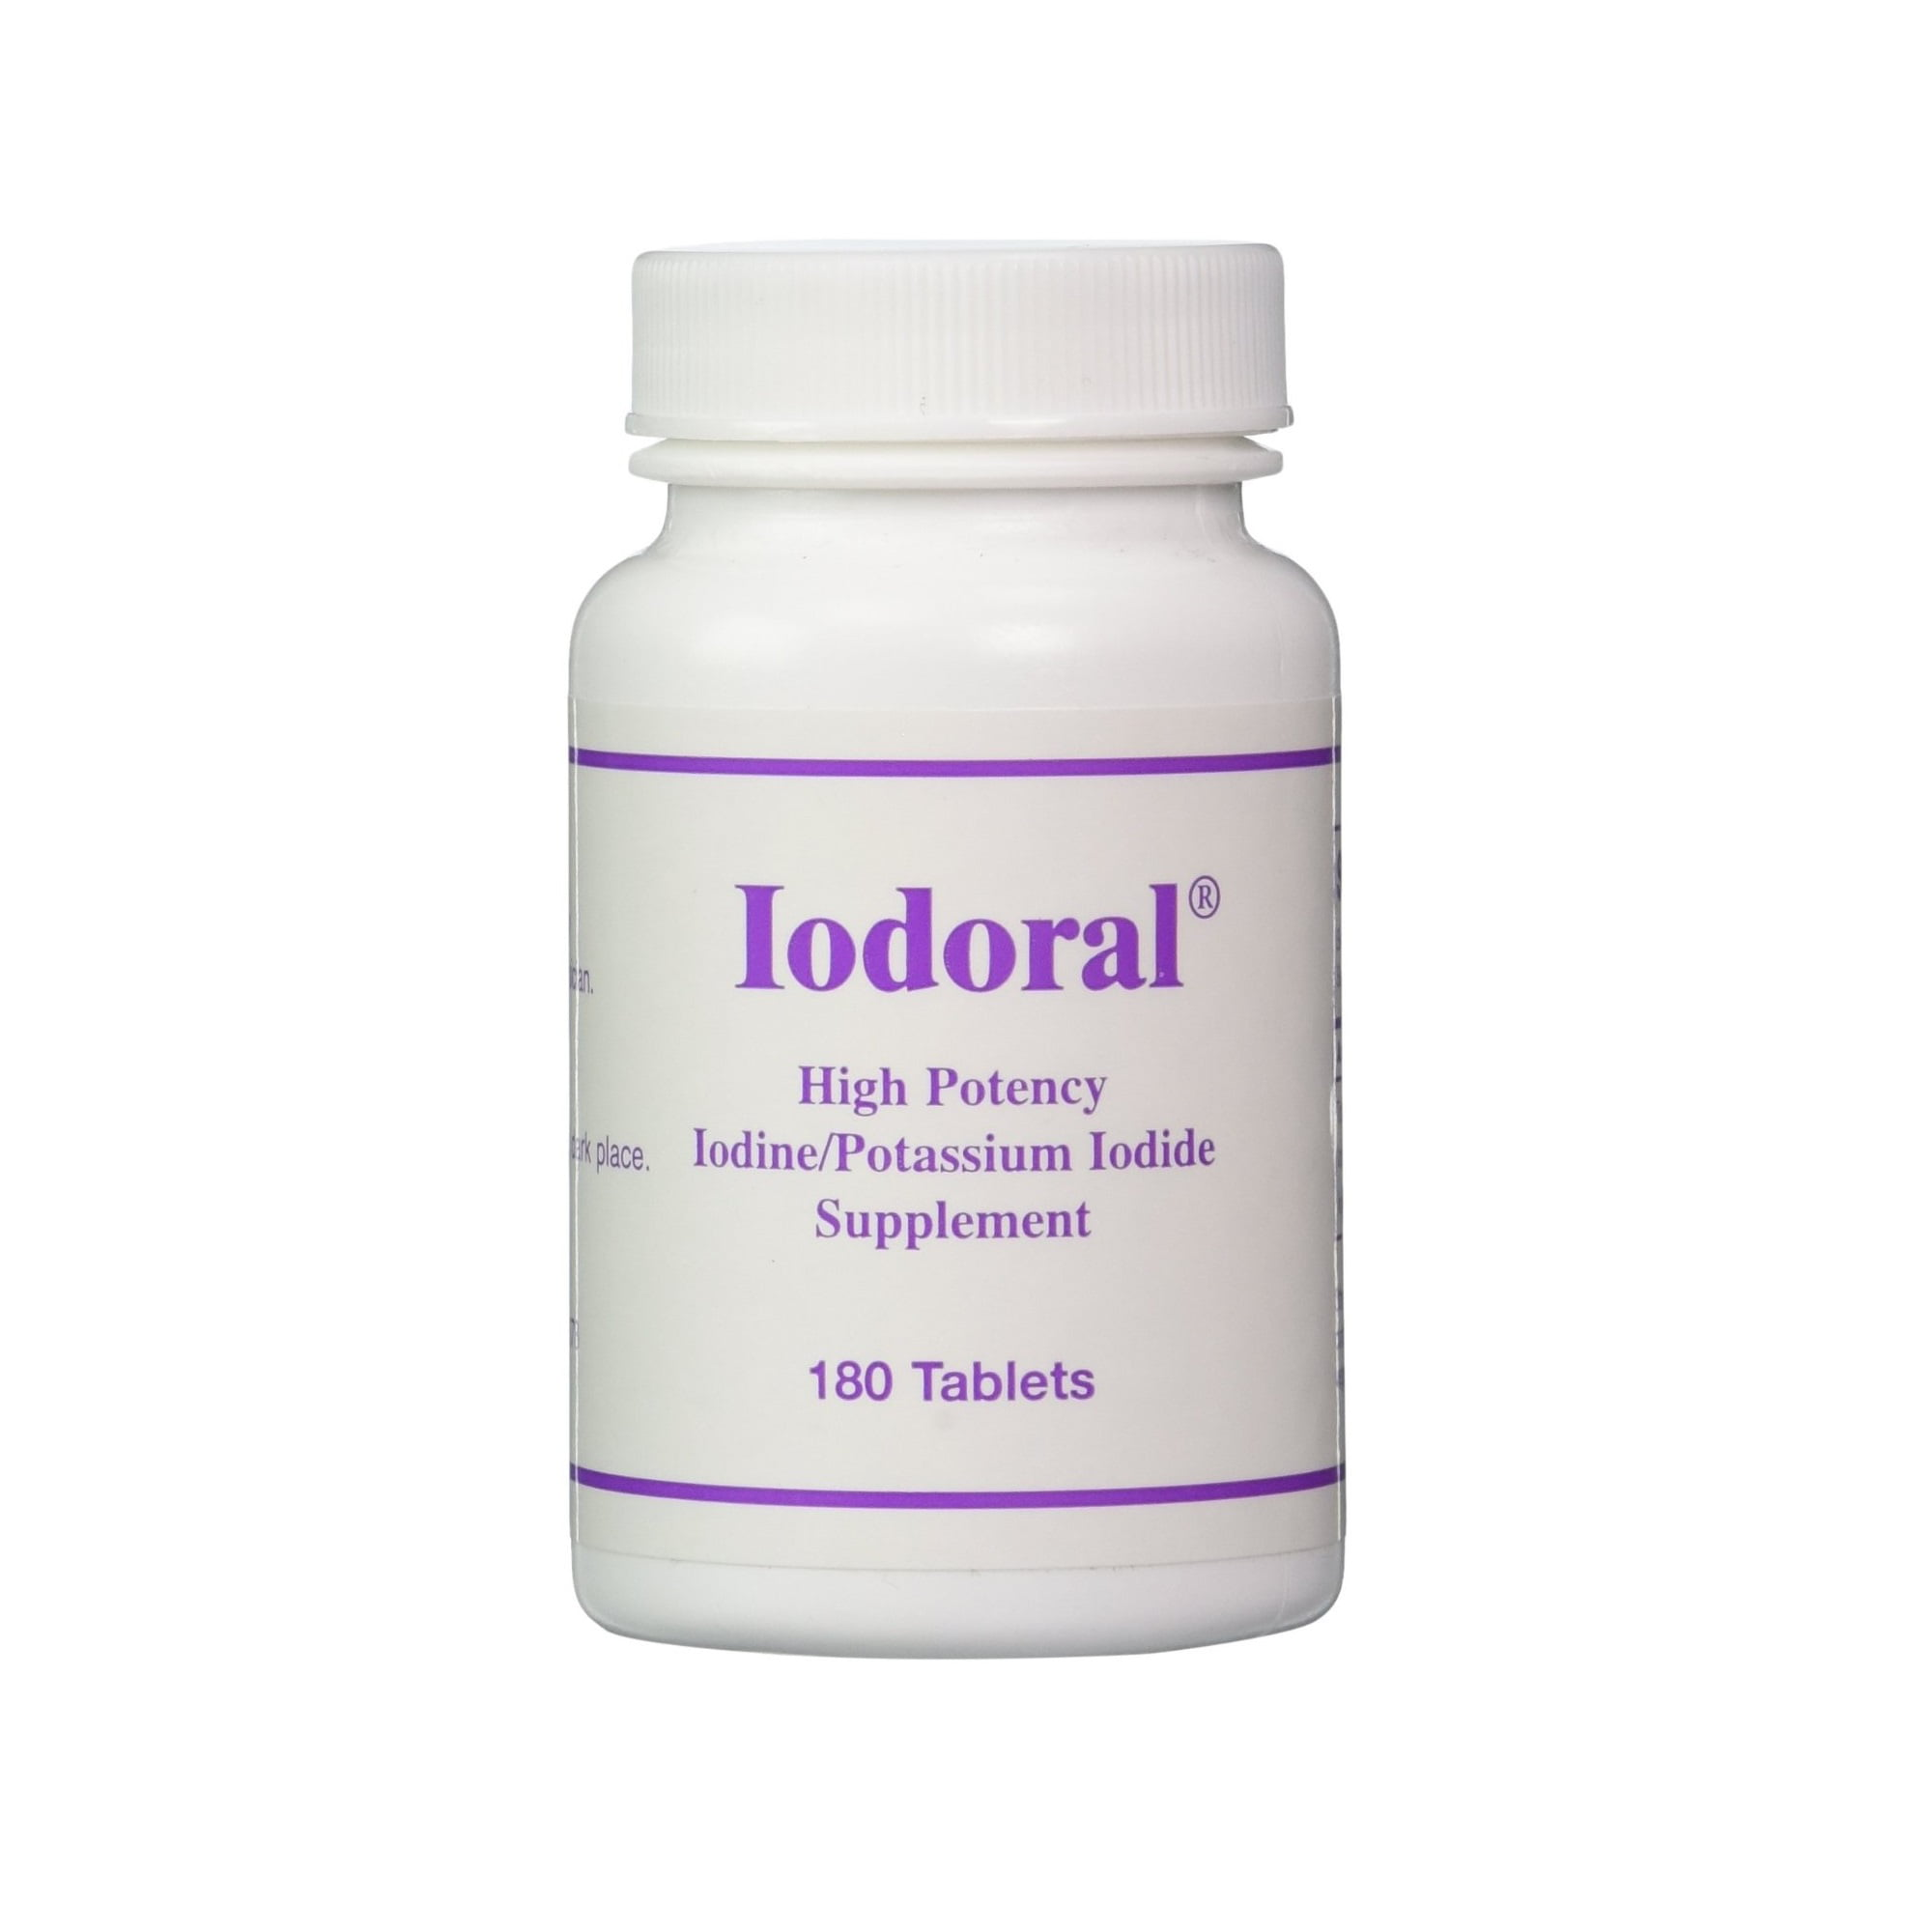 OPTIMOX Iodoral High Potency Iodine Potassium Iodide Thyroid Support Supplement, 180 Count by